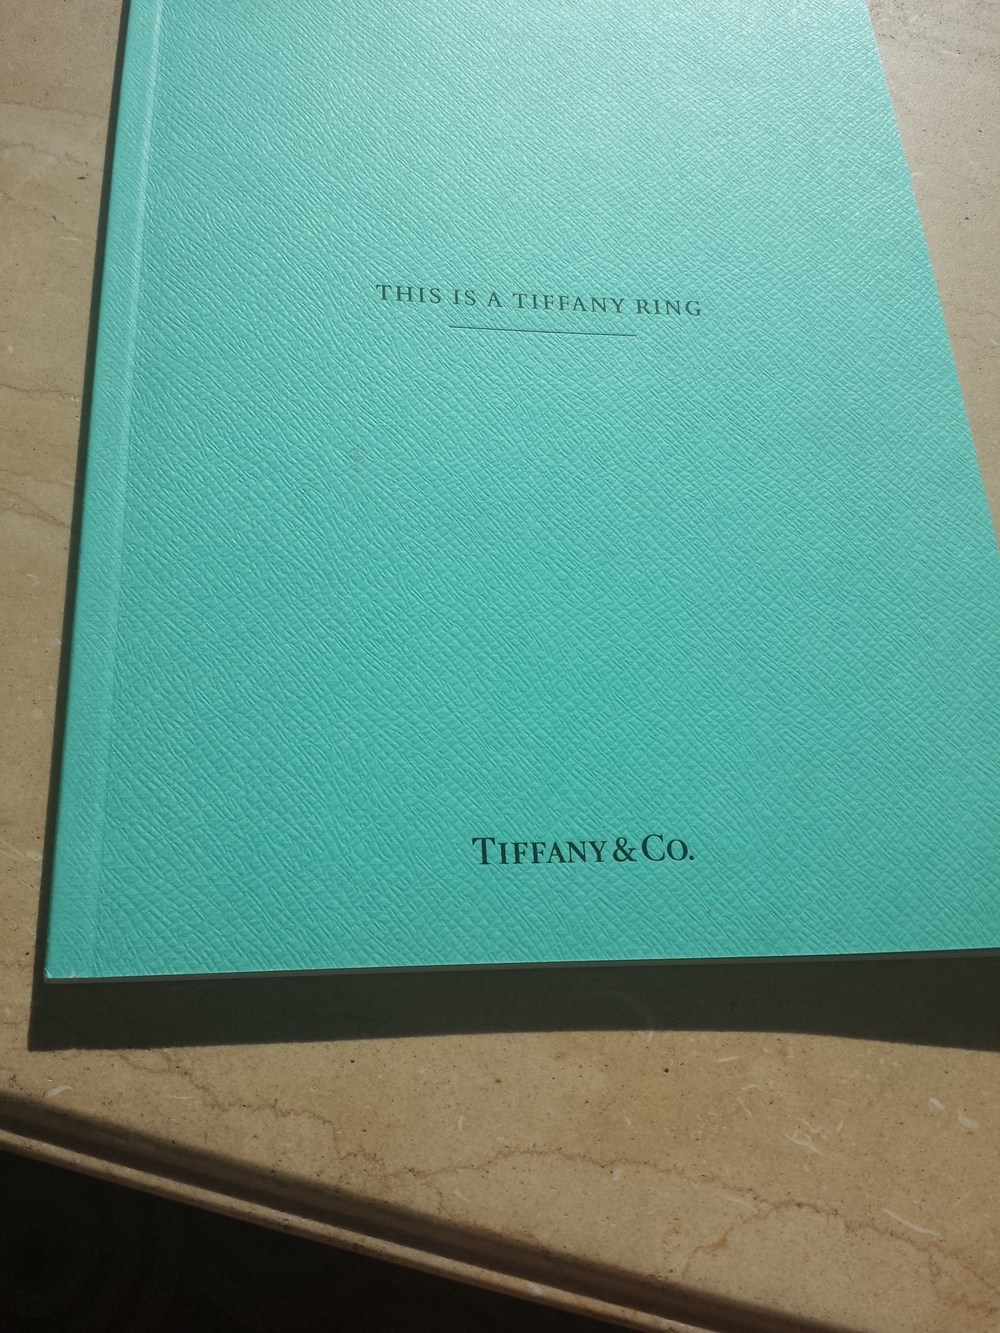 Visited Tiffany&Co on Rodeo, and tried on my dream ring. Those pics are under wraps, but they also randomly decided to let me have their booklet of all of their pieces, and even gave me a bag so I looked like I bought something from the store as I kept walking up and down the street. SWEET!